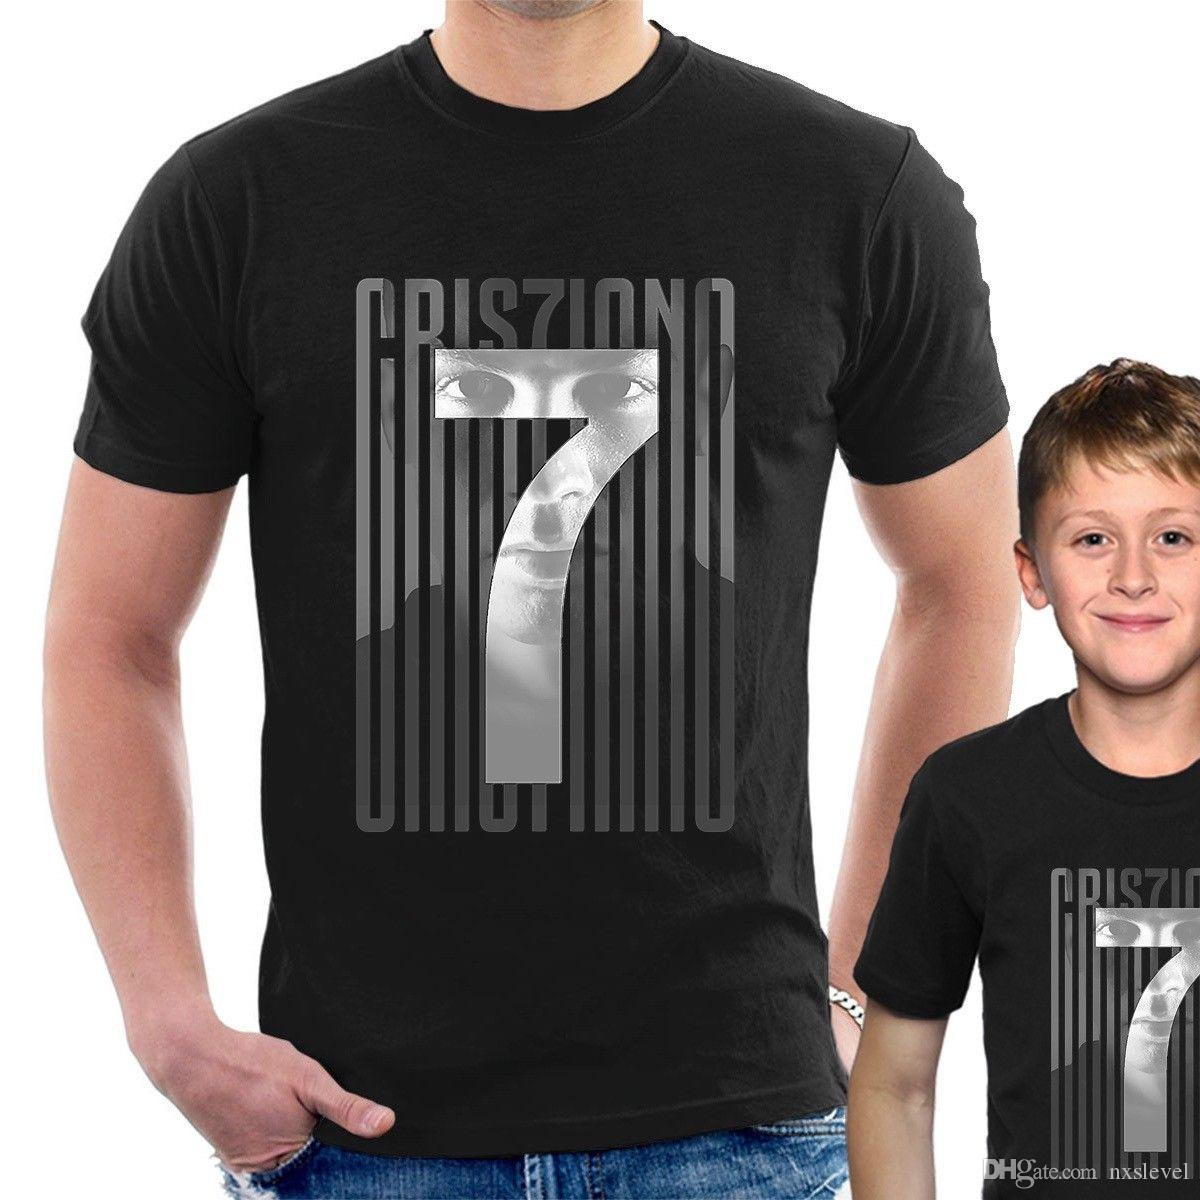 lowest price bf31a f0133 NEW CRIS7IANO CR7 JUVE T-SHIRT Cristiano Ronaldo Top tee adult & kids sizes  N37